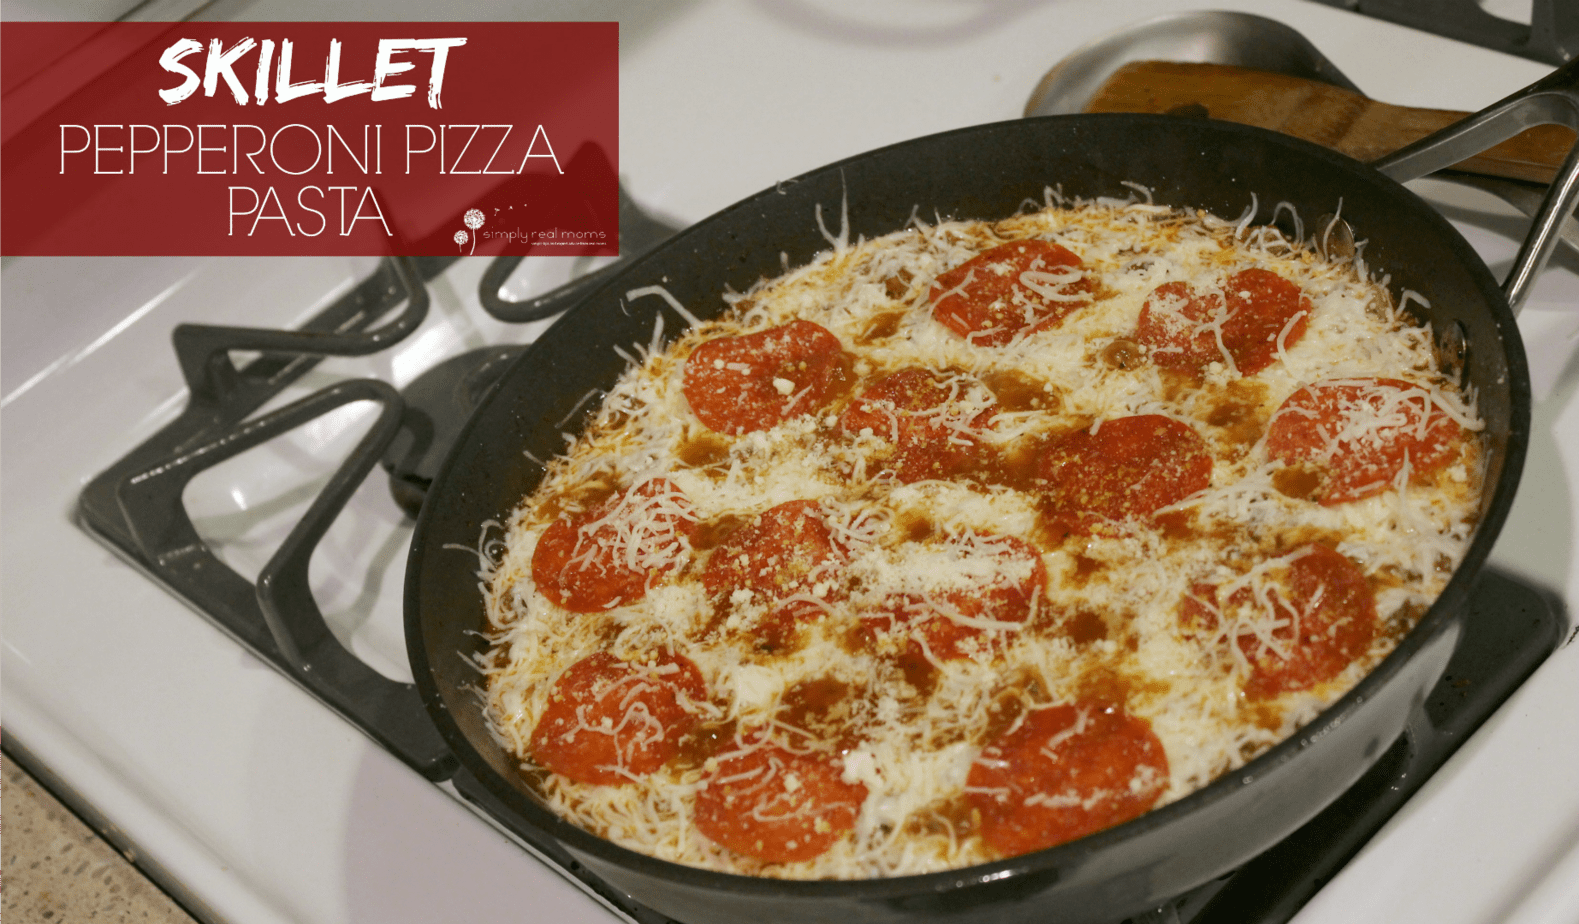 Skillet Pepperoni Pizza Pasta 7